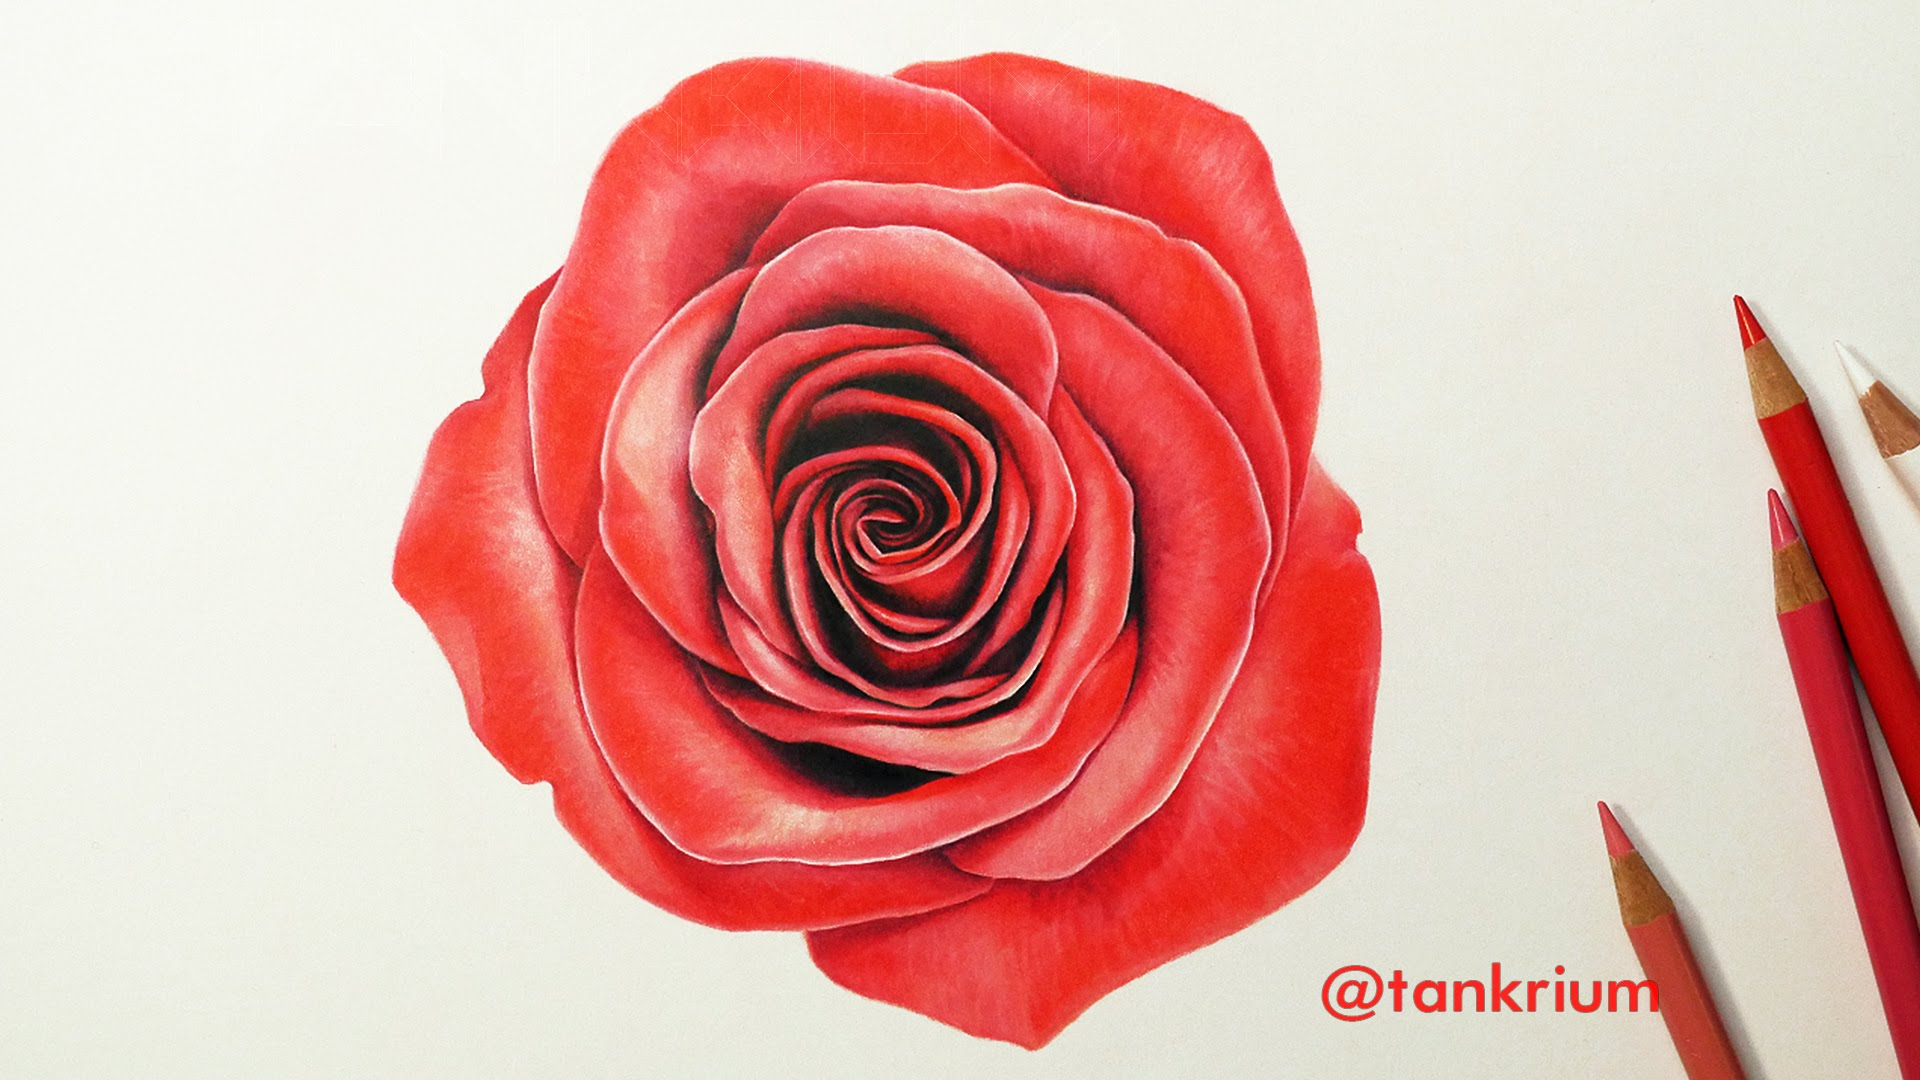 Drawn vase red rose  Draw A Time YouTube